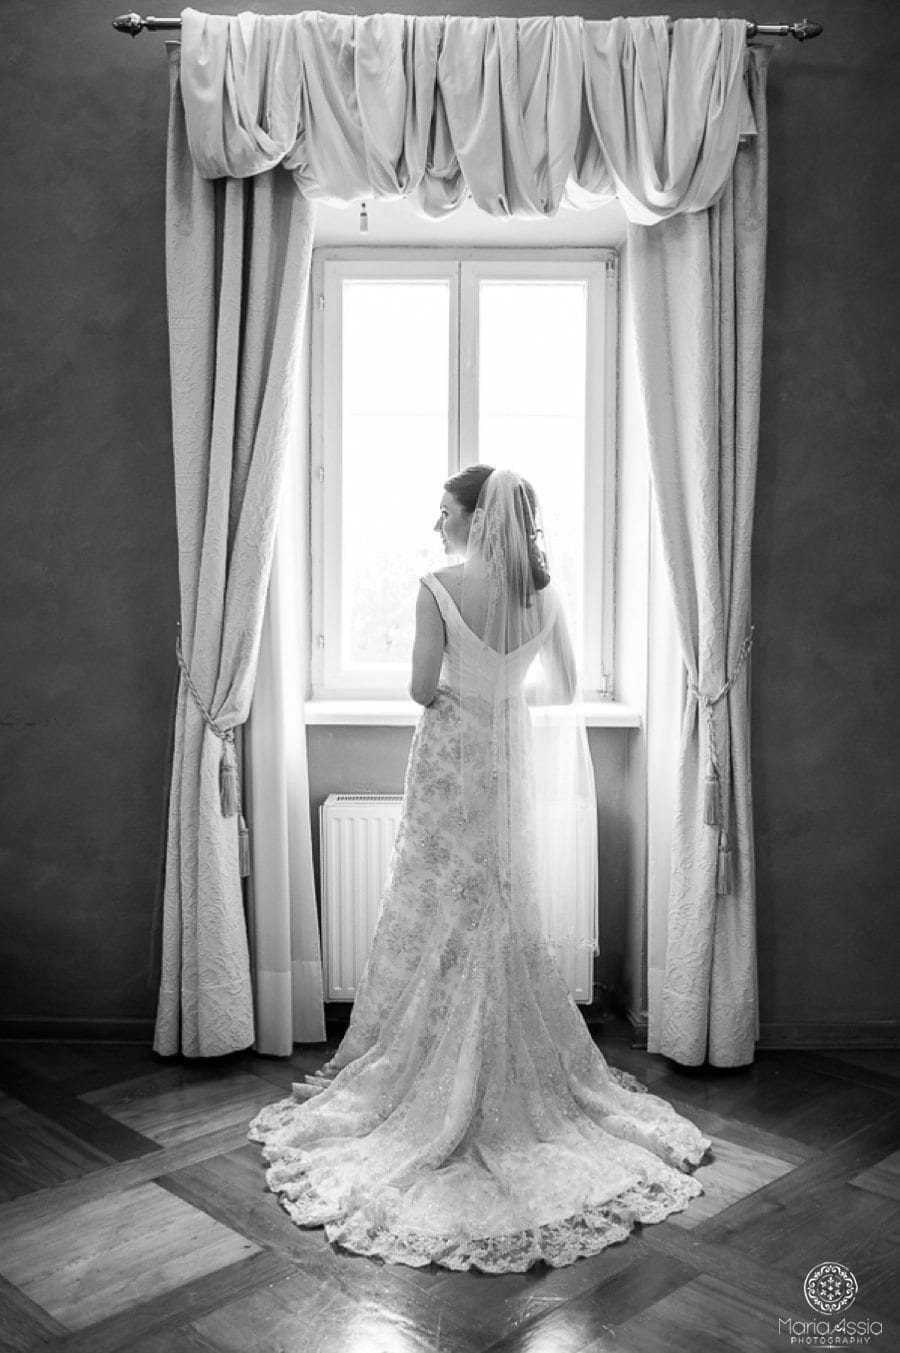 Austrian Bride standing in a window